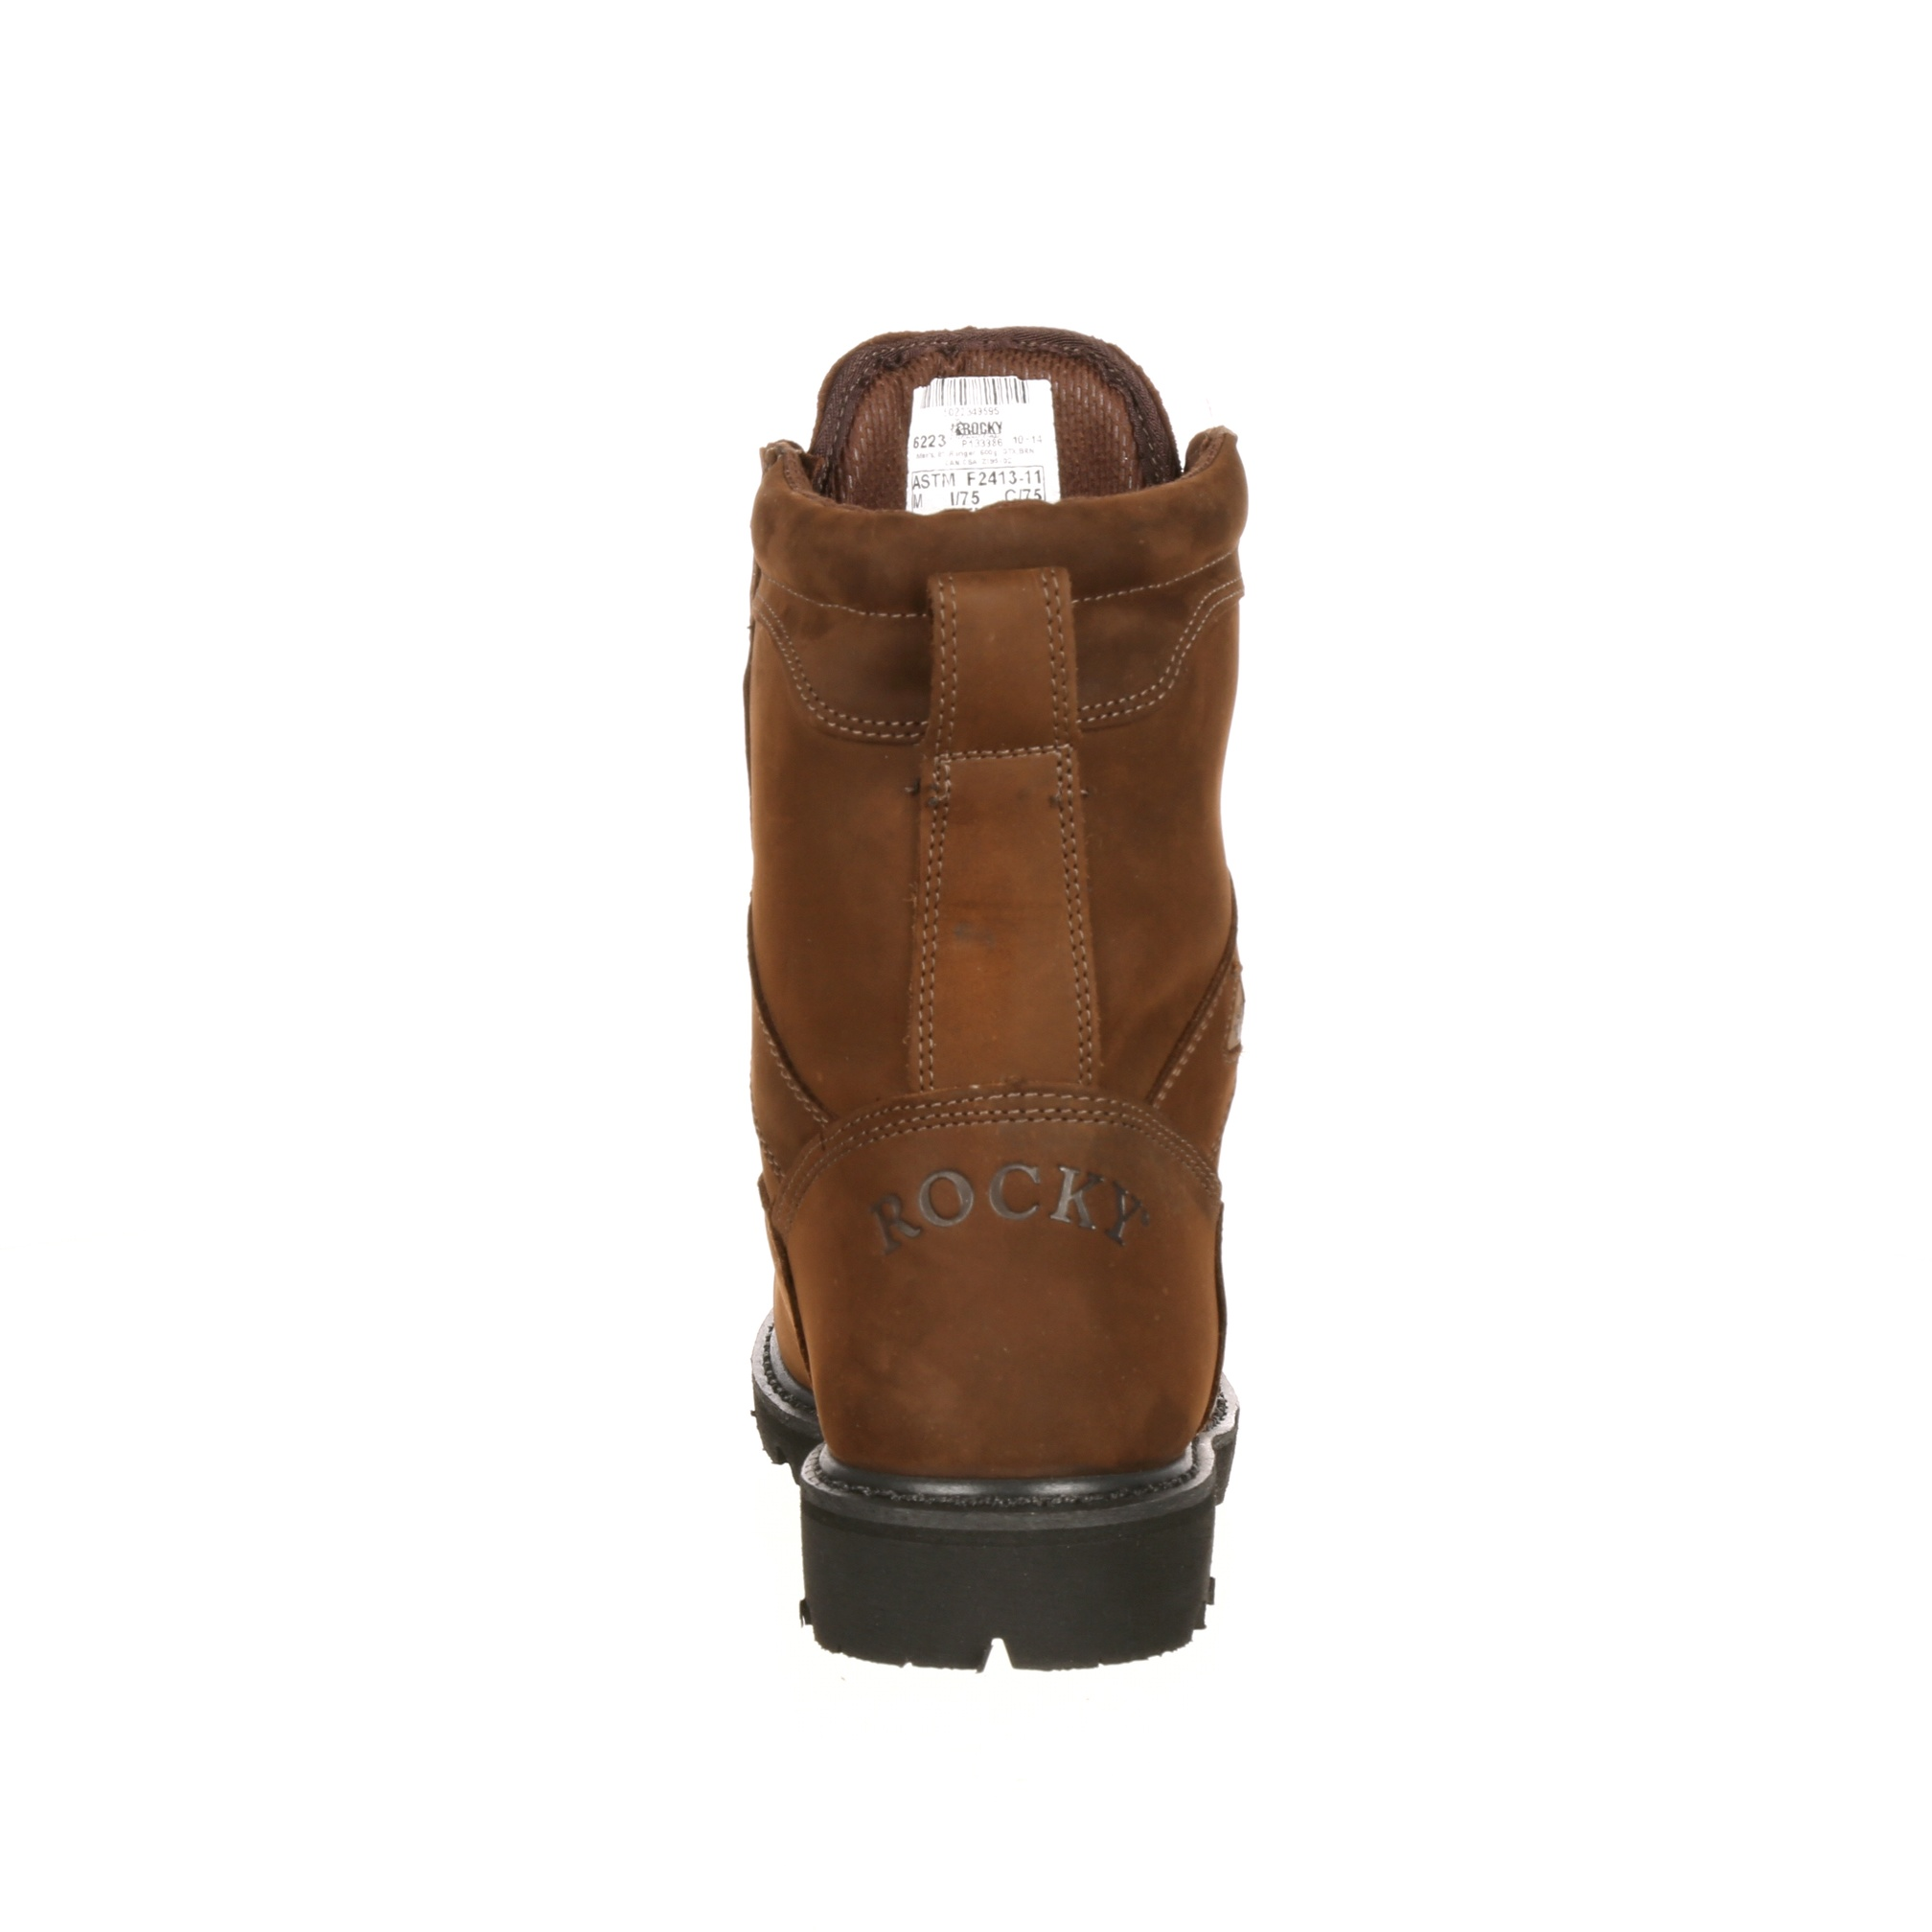 801de80d300 Rocky Ranger Steel Toe GORE-TEX® Waterproof 600G Insulated Outdoor Boot